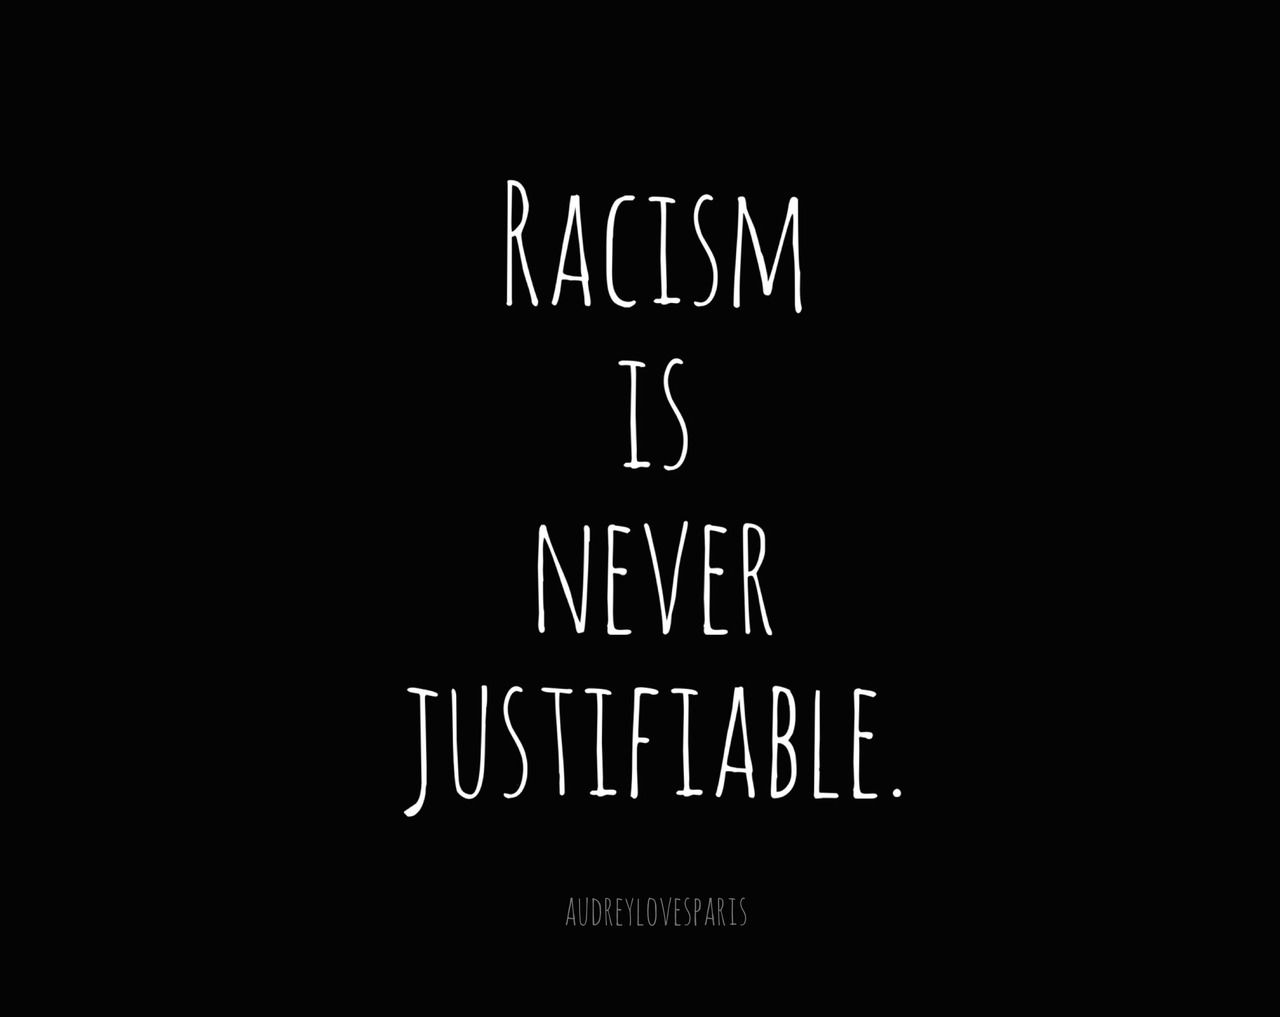 Race Baiters are the epitome of evil in today's American society. Politicians who use race as a talking point are only attempting to divide our Country as to achieve their goals